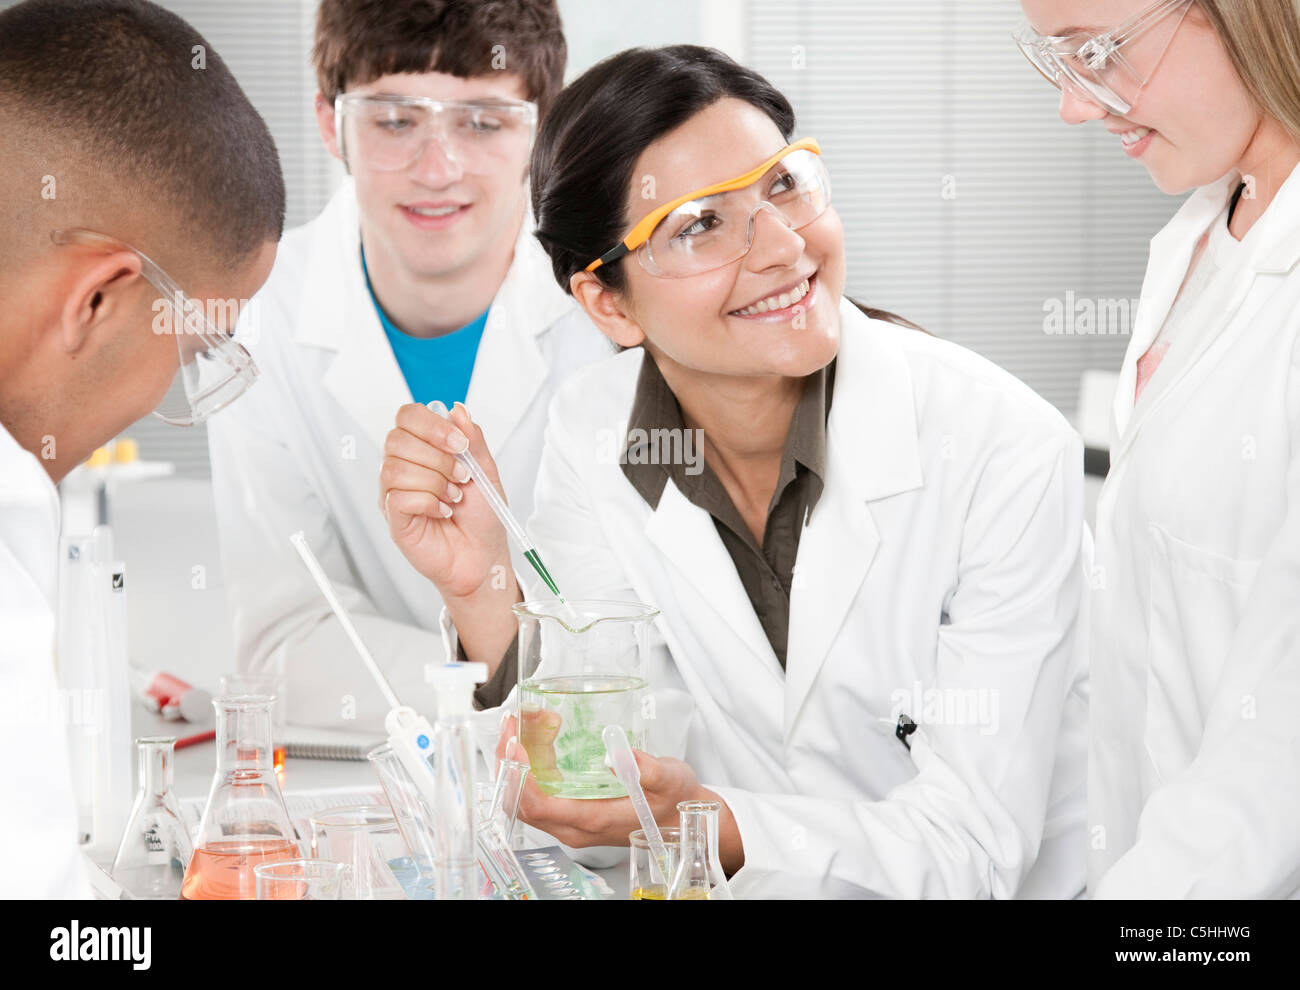 Chemistry lesson - Stock Image